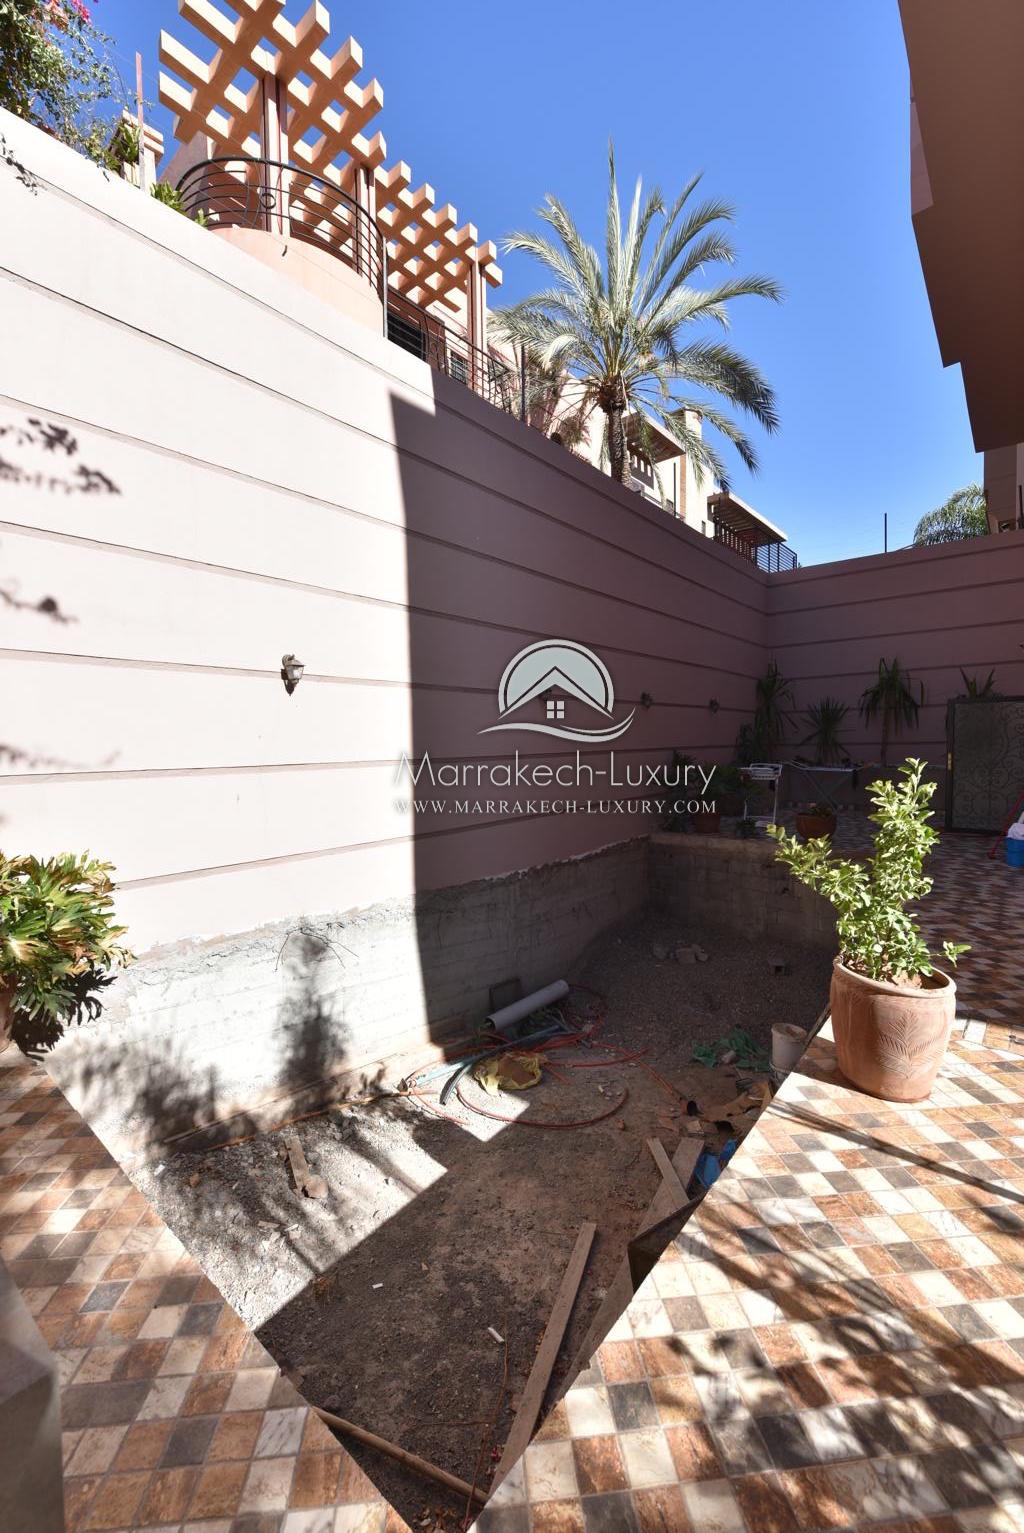 Vilavtar1029ma 37 agence immobili re marrakech acheter for Agence immobiliere 37